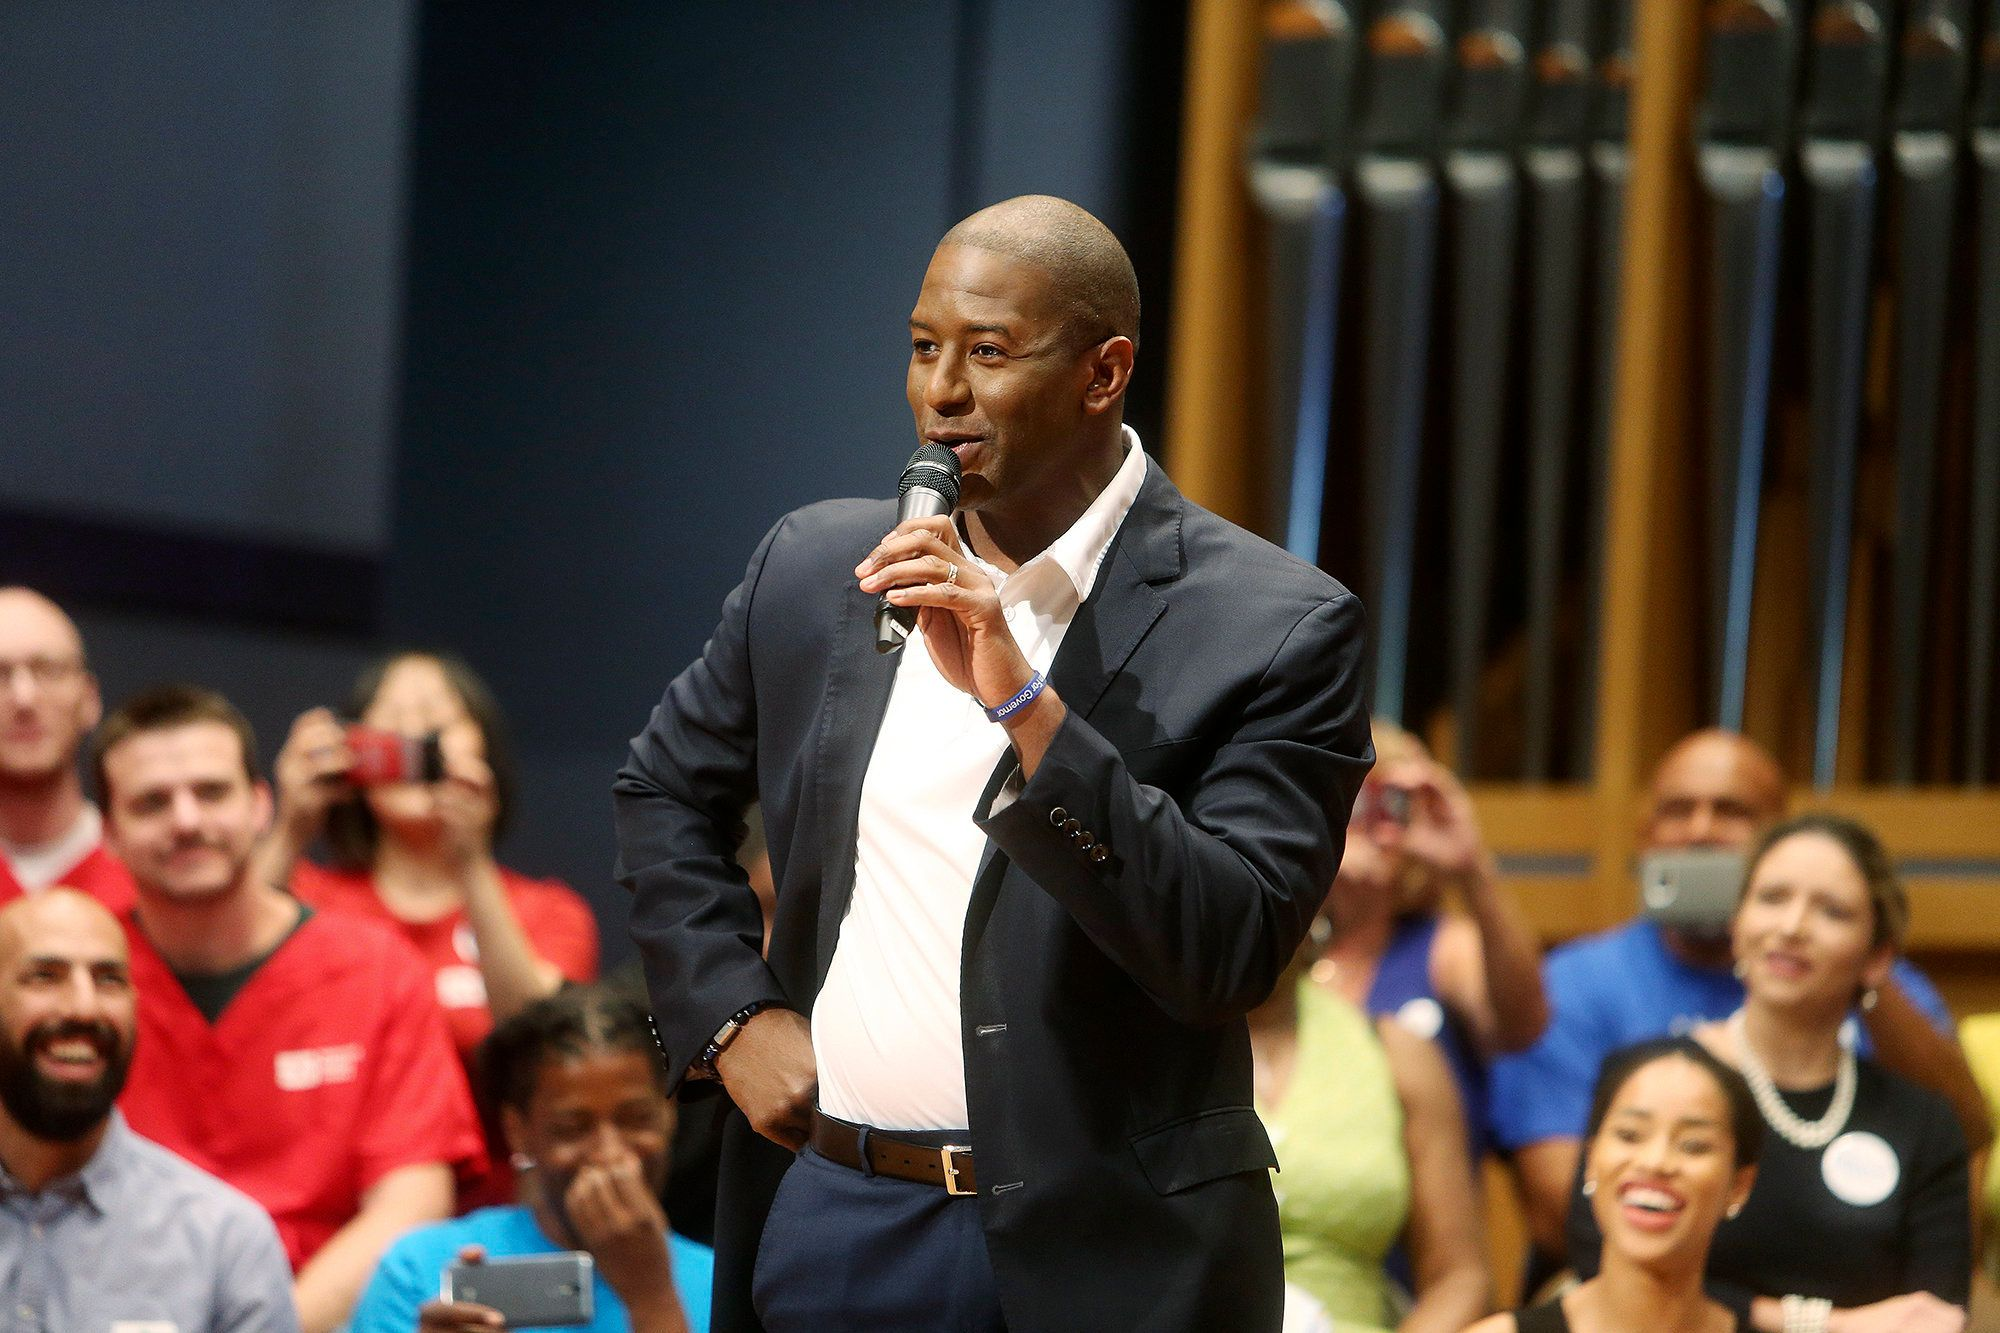 Democrat Andrew Gillum Back On Campaign Trail for Florida Governor After Hurricane